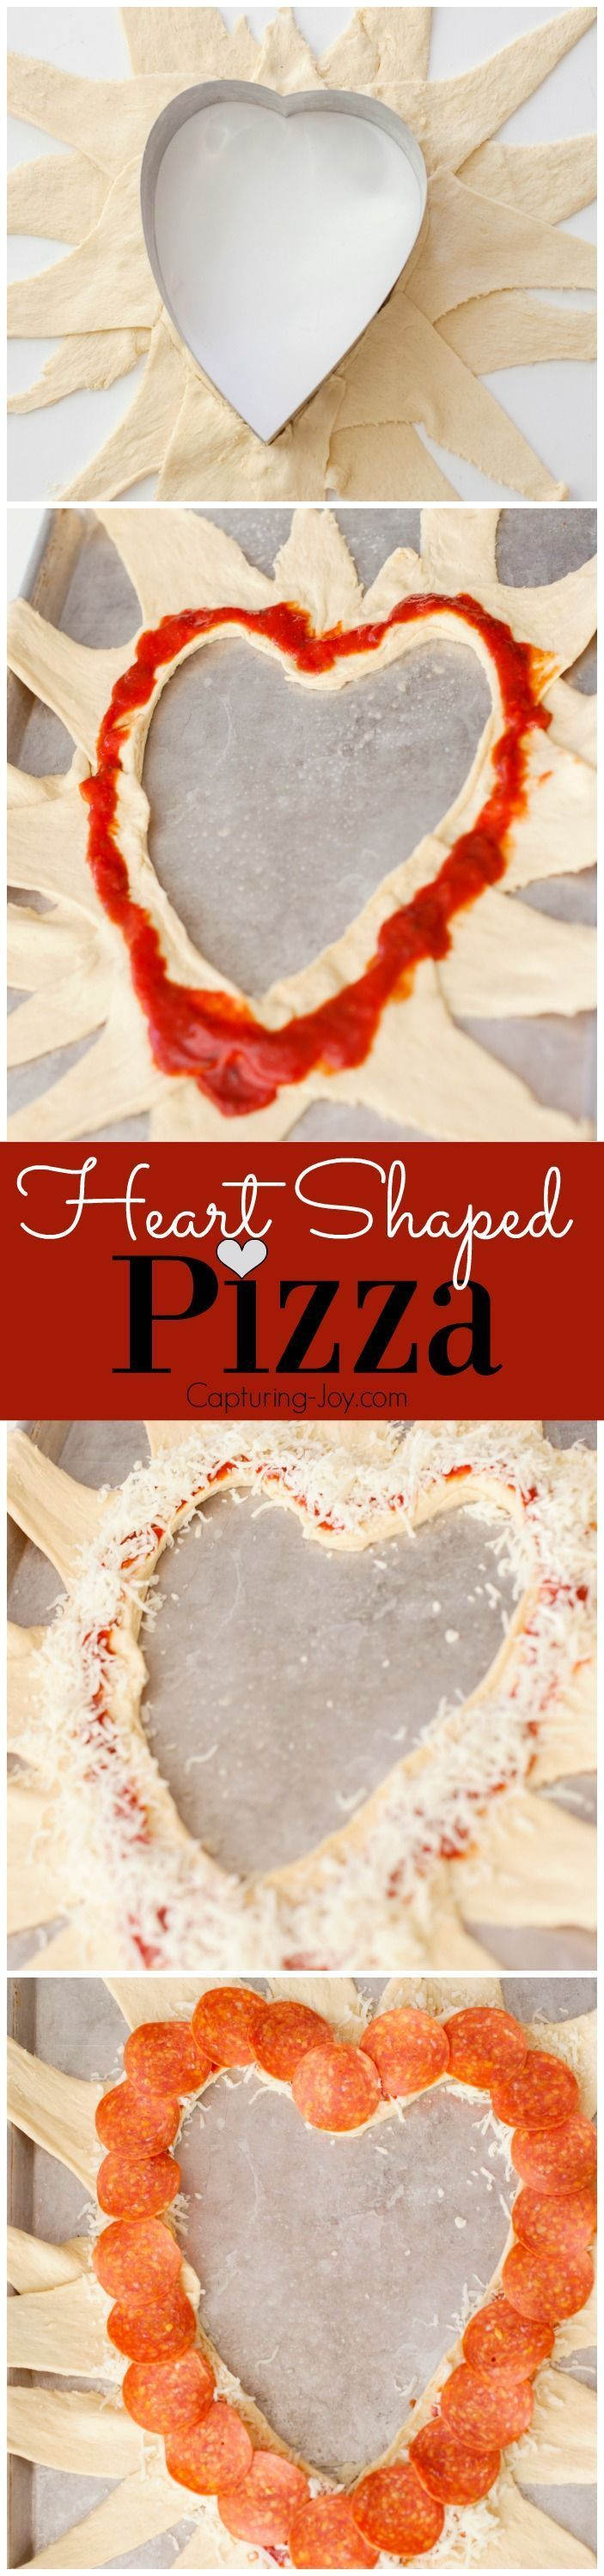 Easy Heart Shaped Pizza recipe, perfect for Valentine's day dinner!   Valentine's Day   www.Capturing-Joy.com